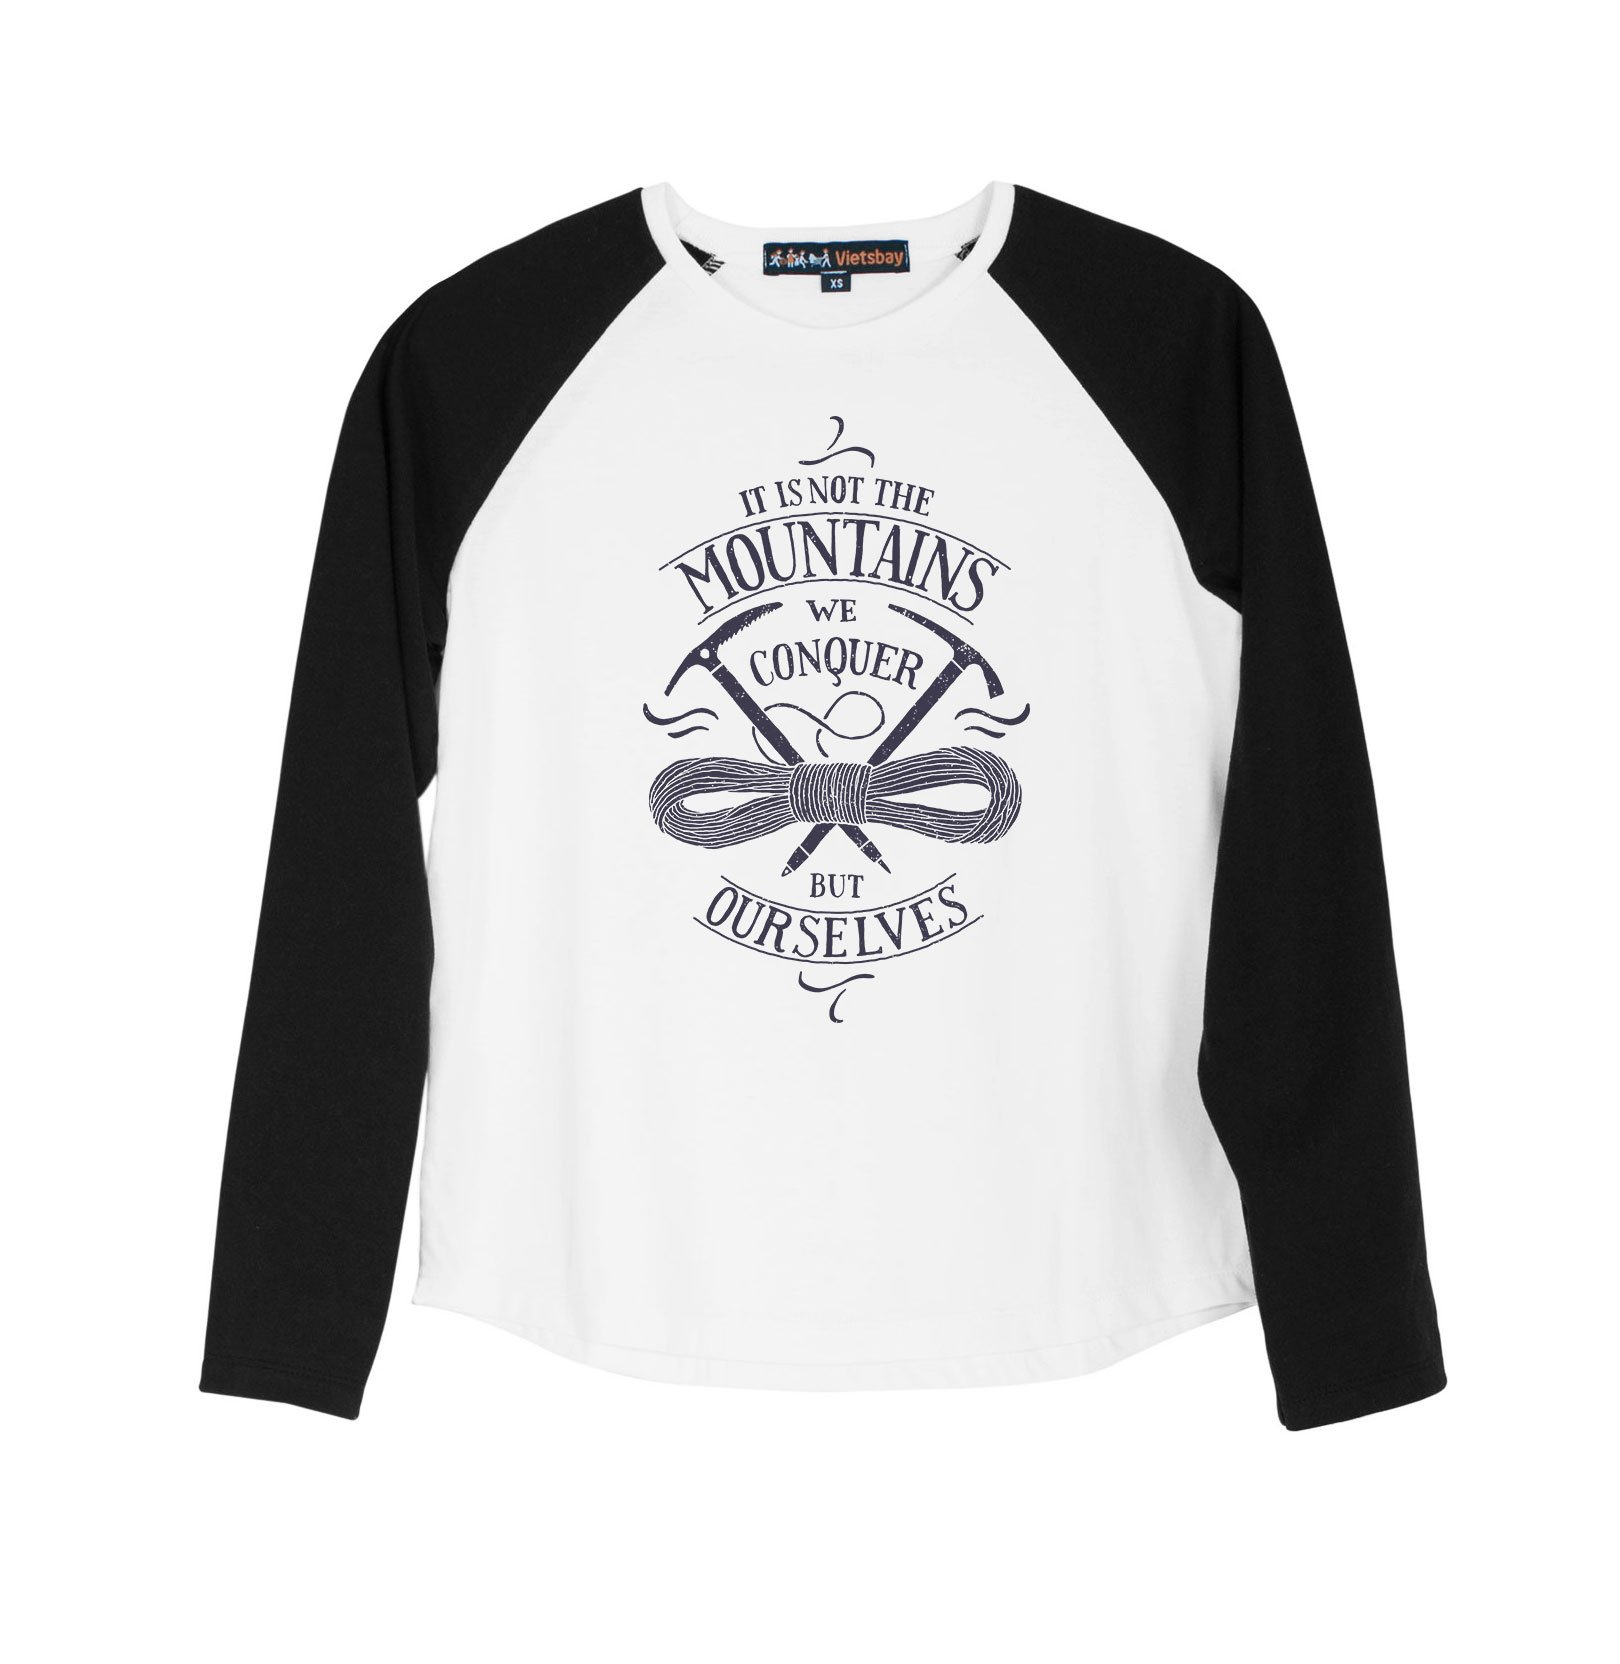 Travel Tool Printed 100% Cotton Long Sleeves Kid Raglan T-Shirt UTS_01 XL